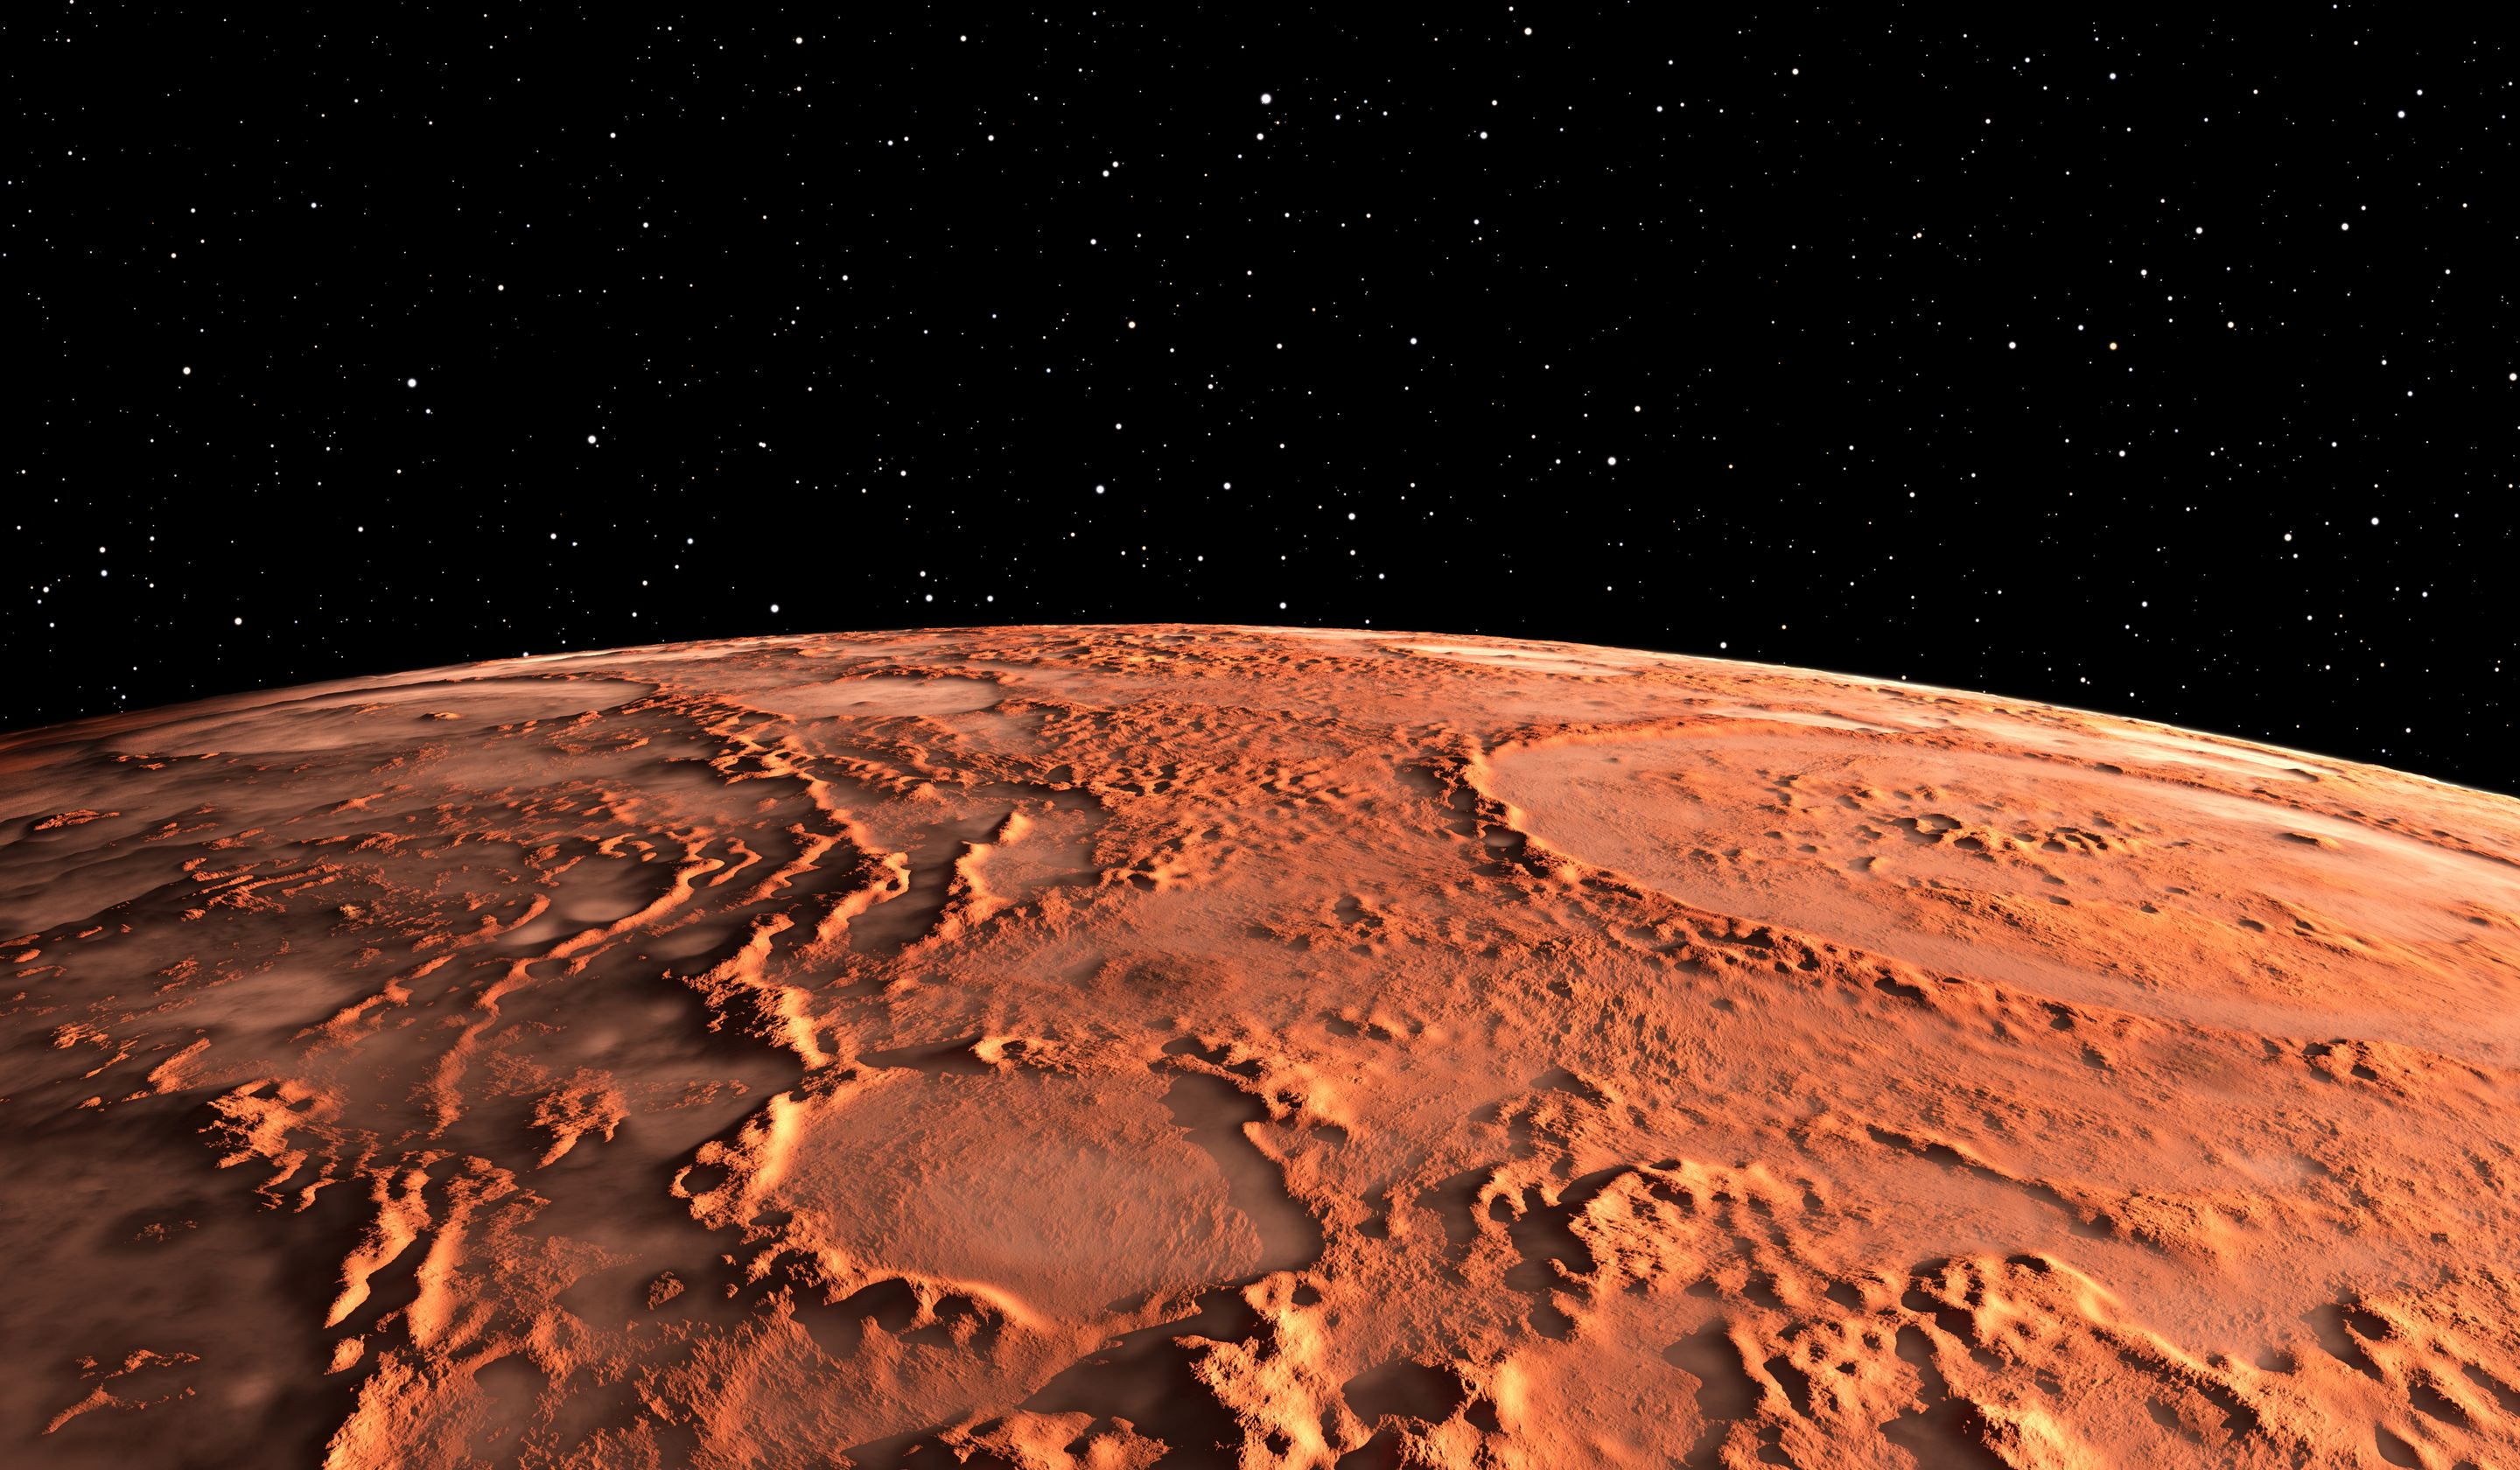 A digital illustration of the surface of mars from space